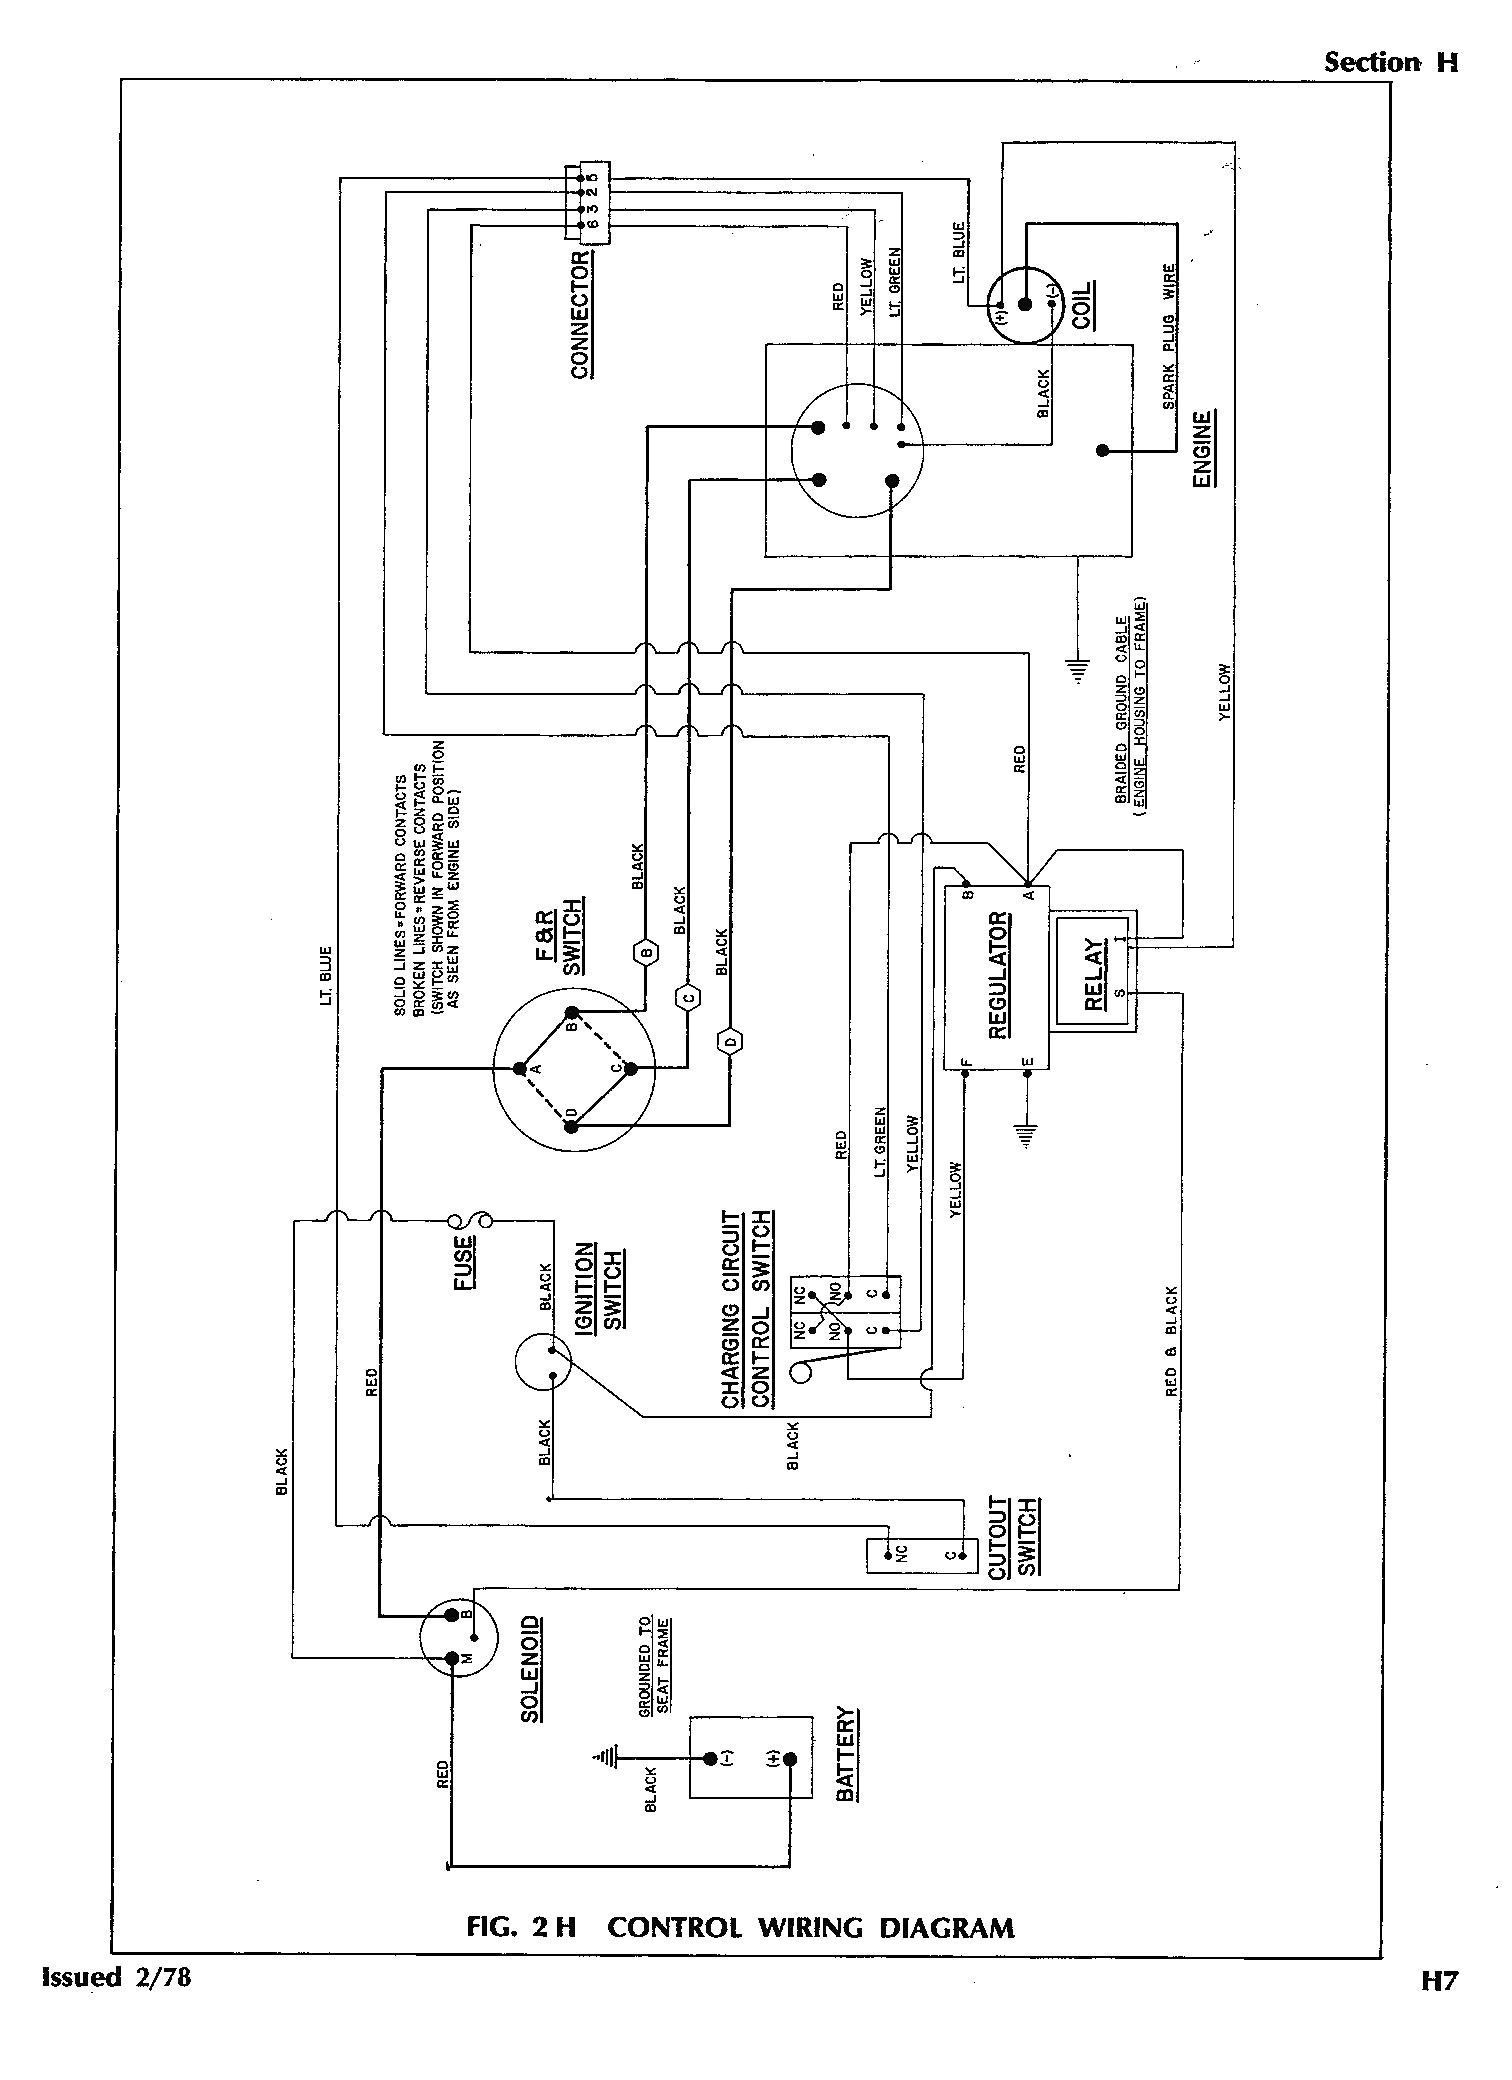 Electric Yamaha Golf Cart Wiring Diagram from i.pinimg.com